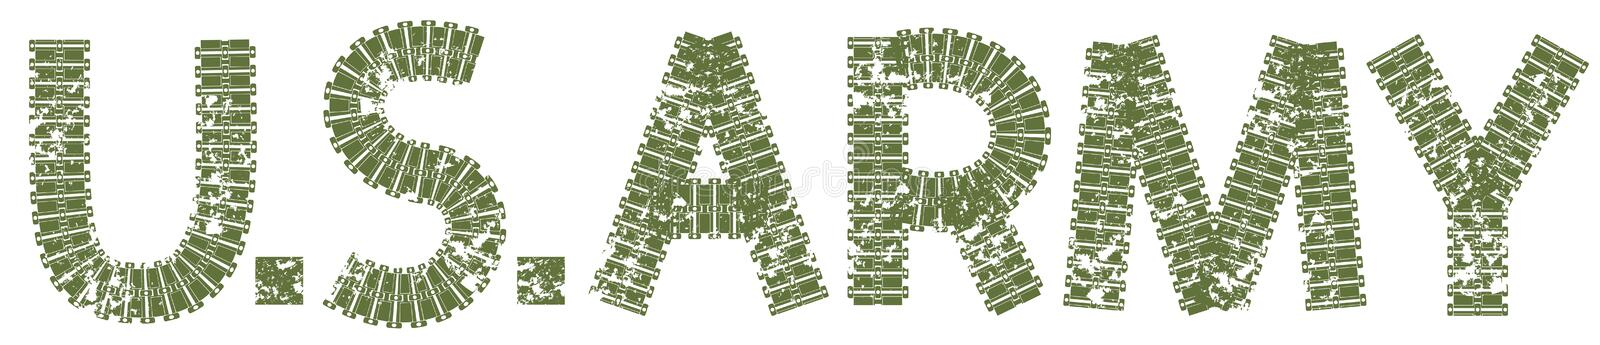 U.S. Army text with the letters made of tank tracks royalty free illustration